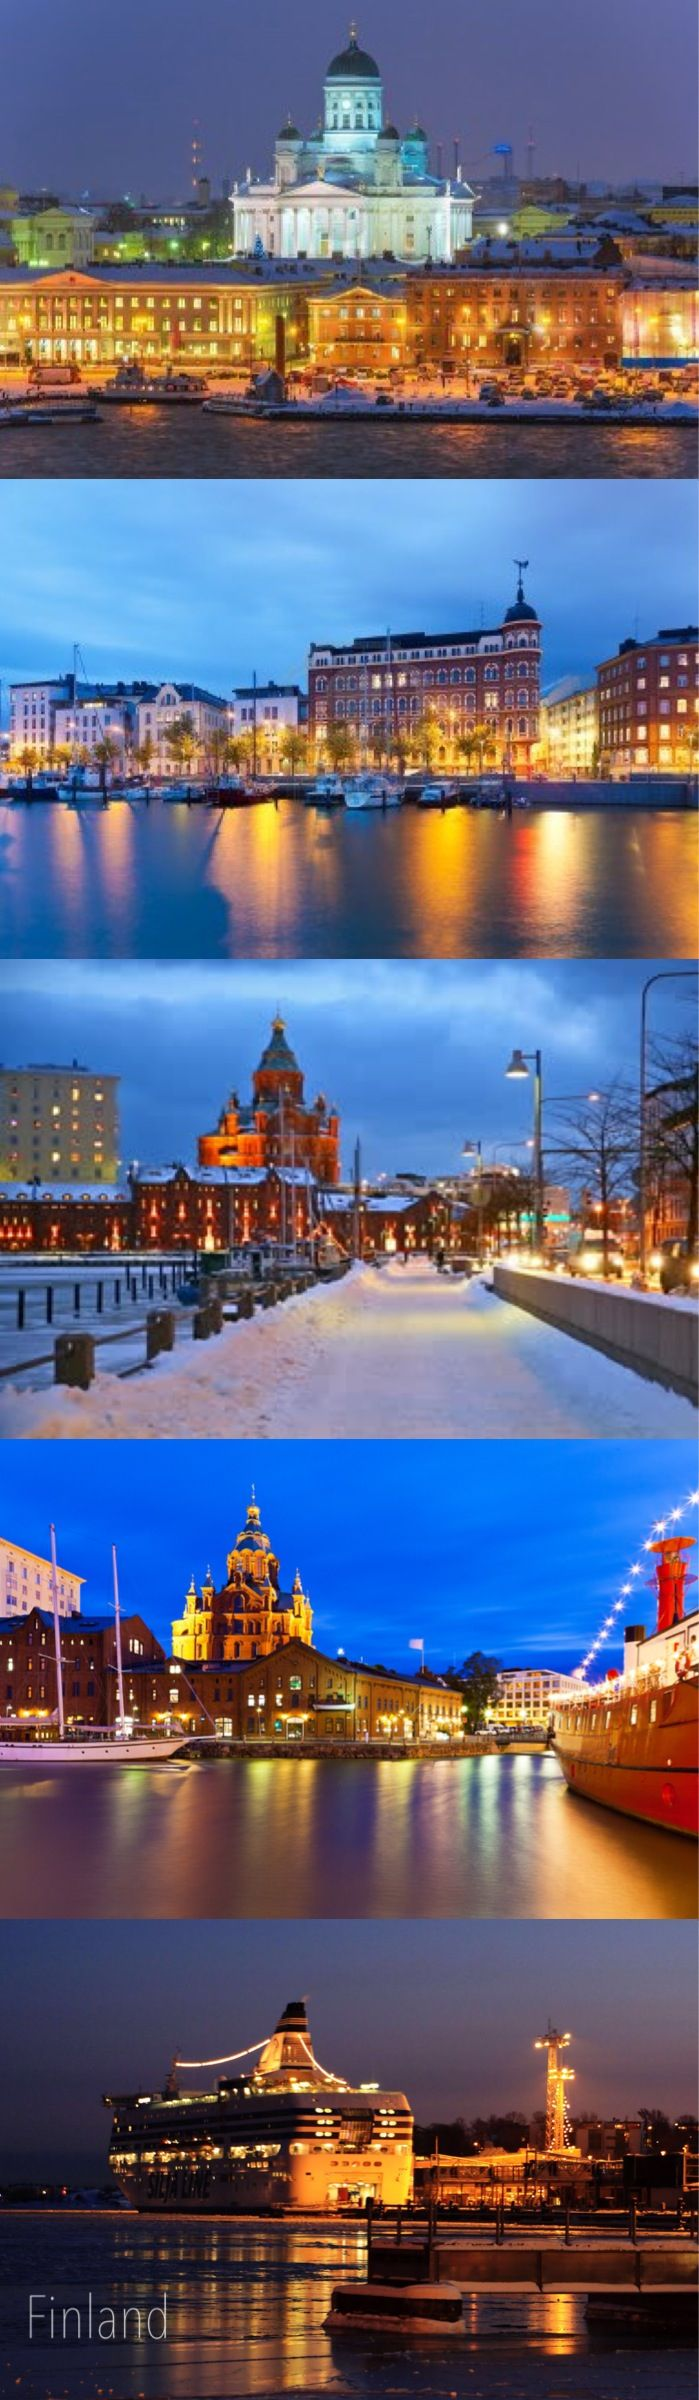 Helsinki, Finland is one of my absolute favorite cities, especially in the winter!